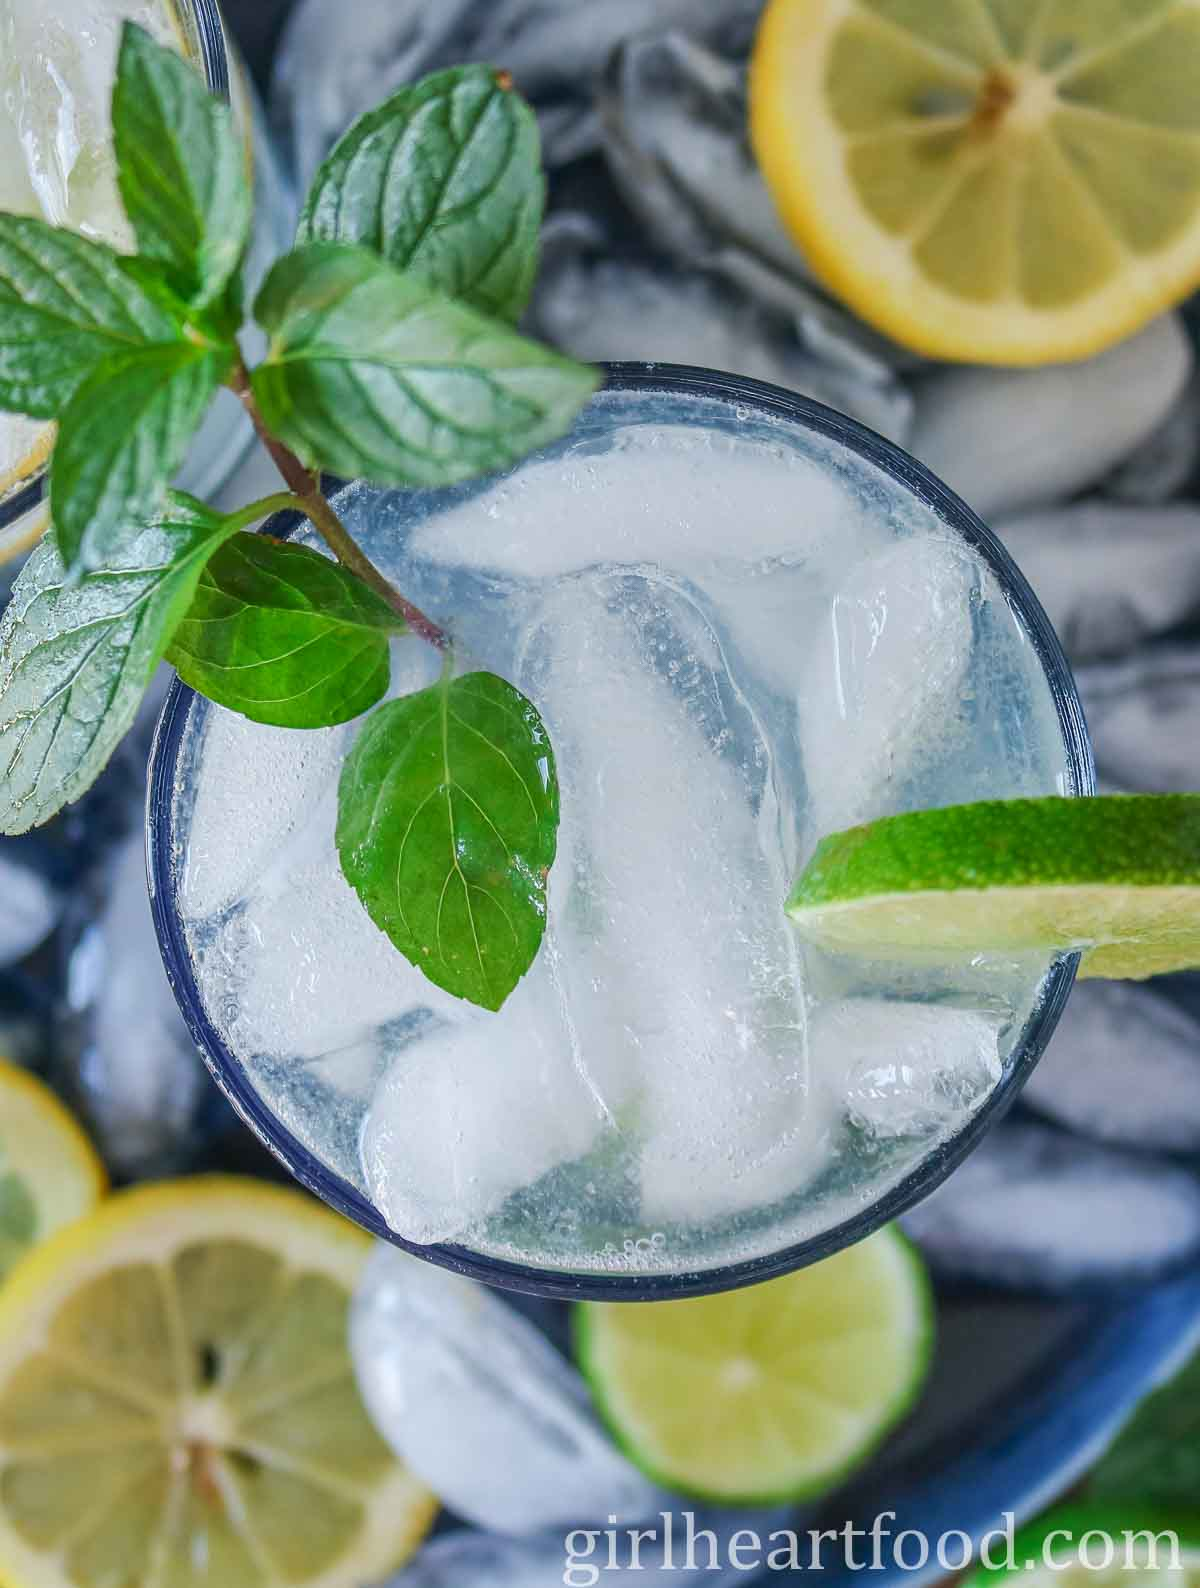 Overhead shot of a glass of icy vodka lime soda garnished with fresh mint.